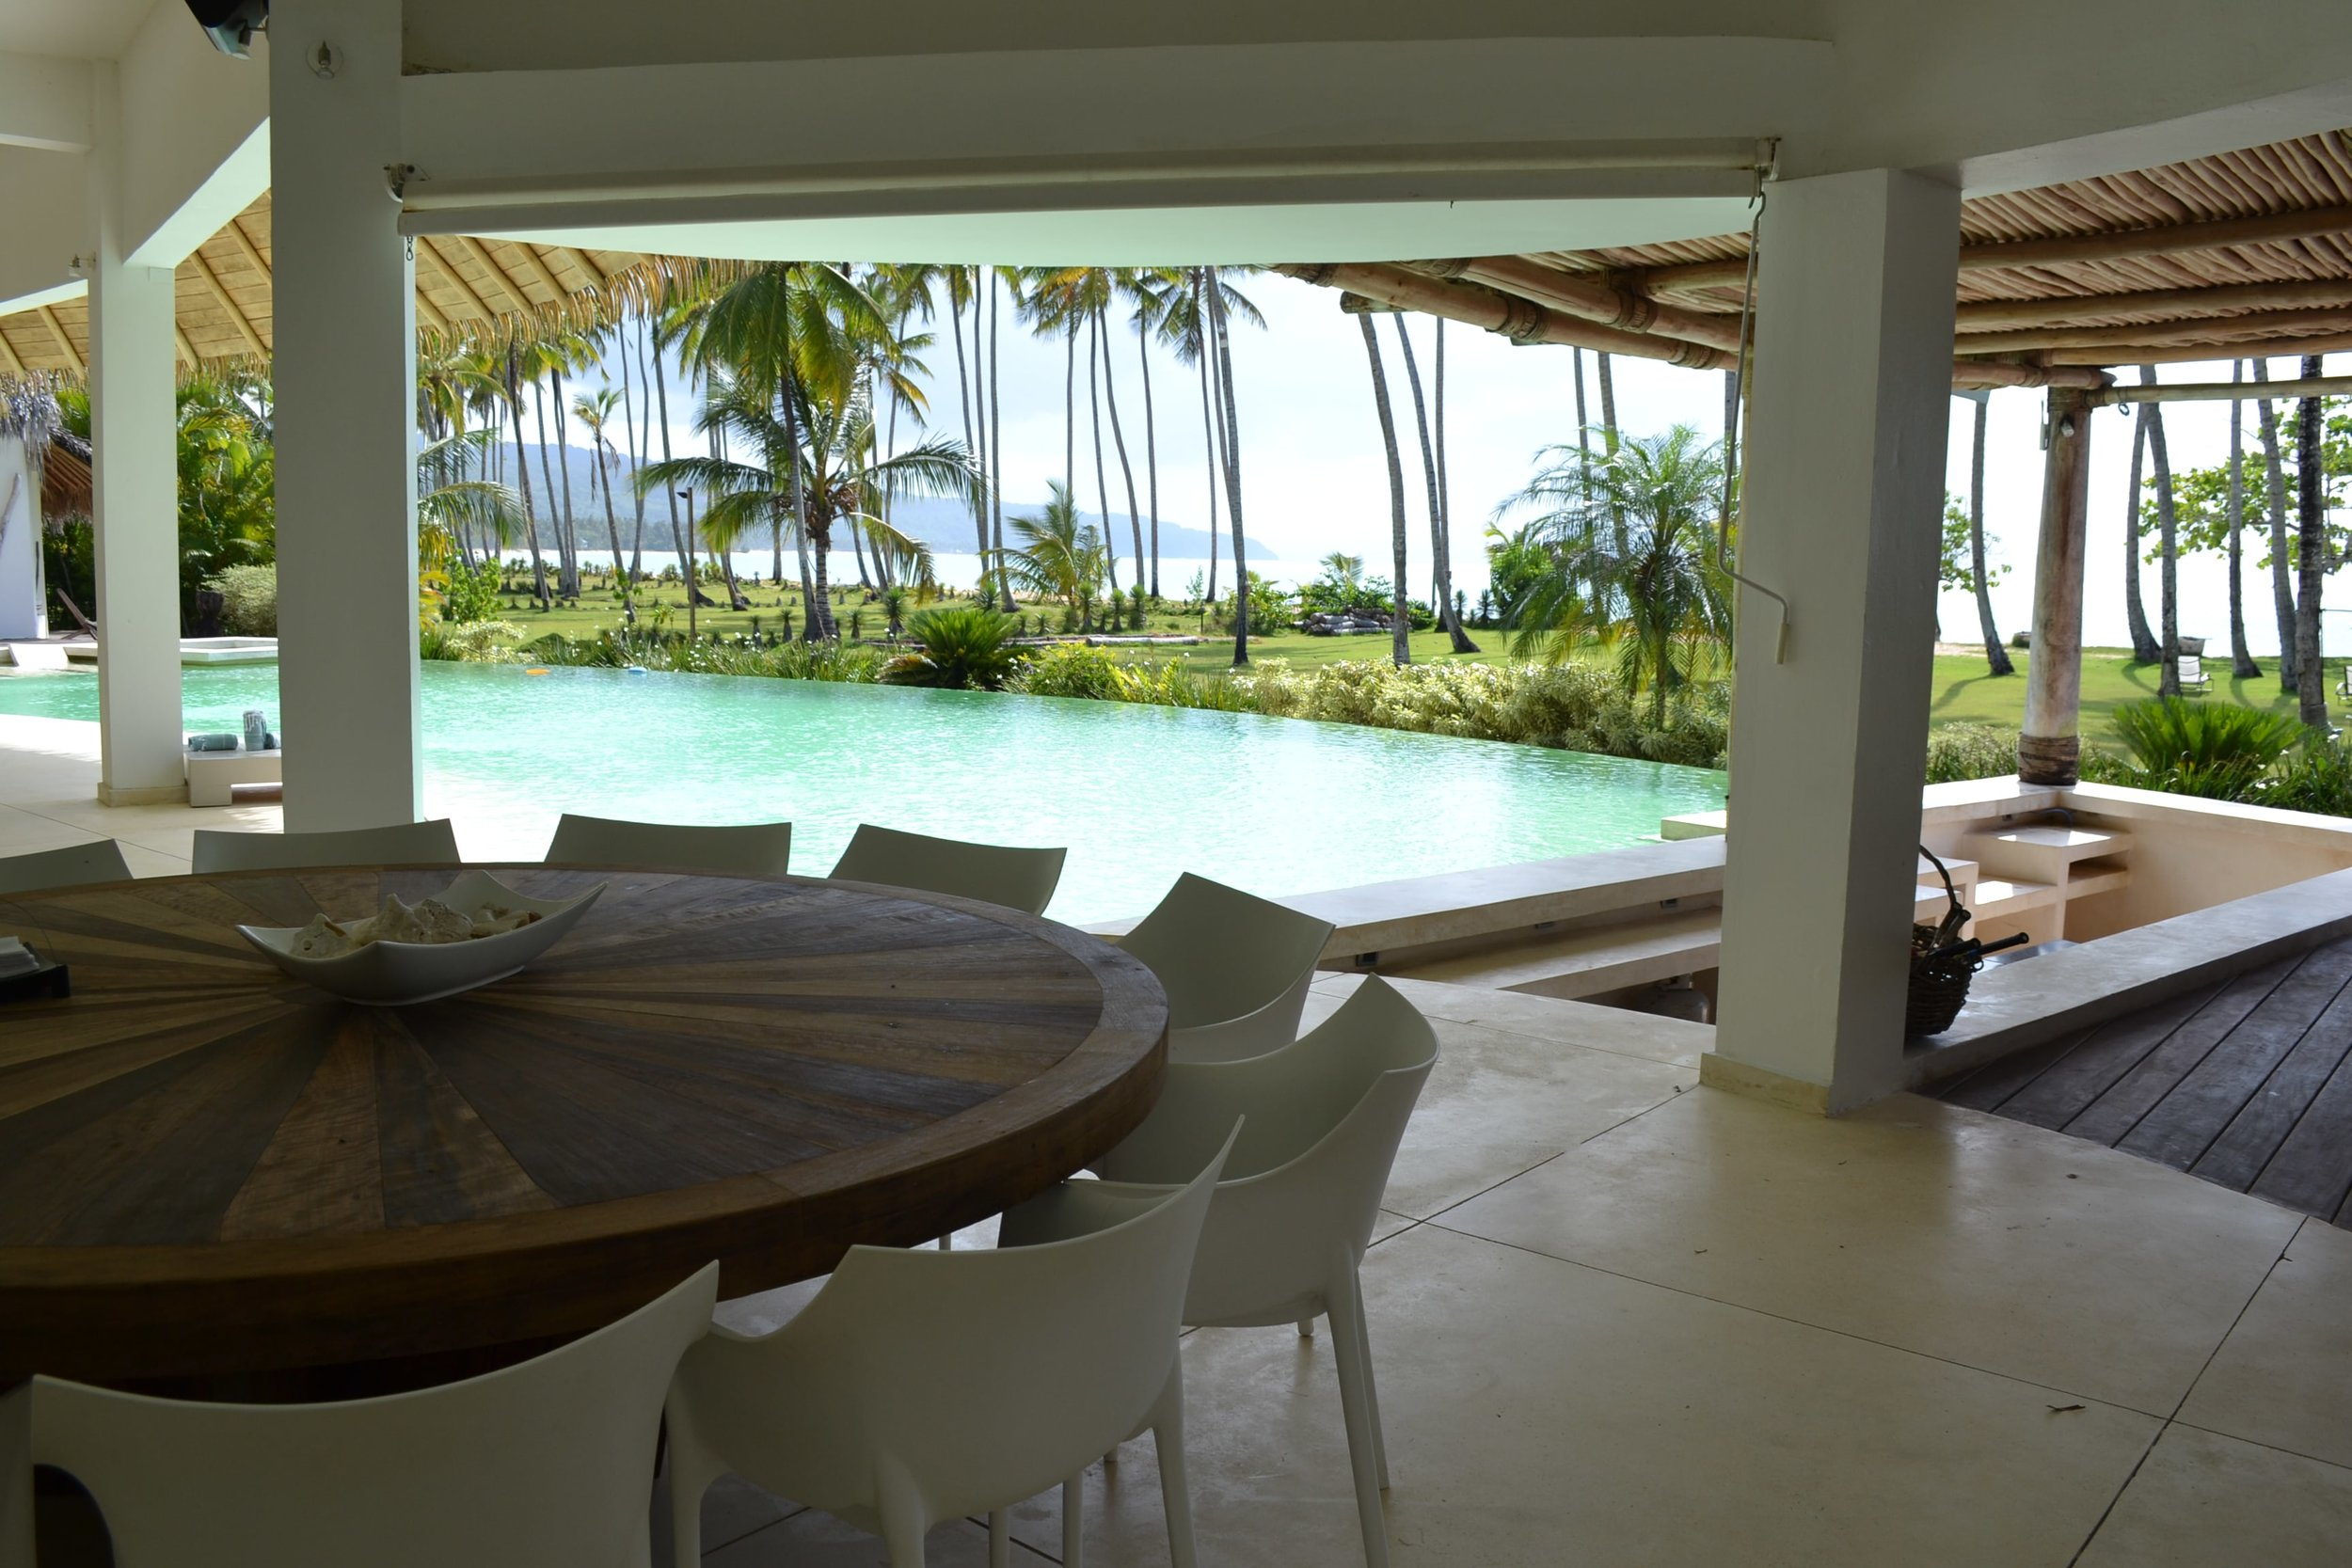 Villa for Sale Las Terrenas swimming pool view.JPG